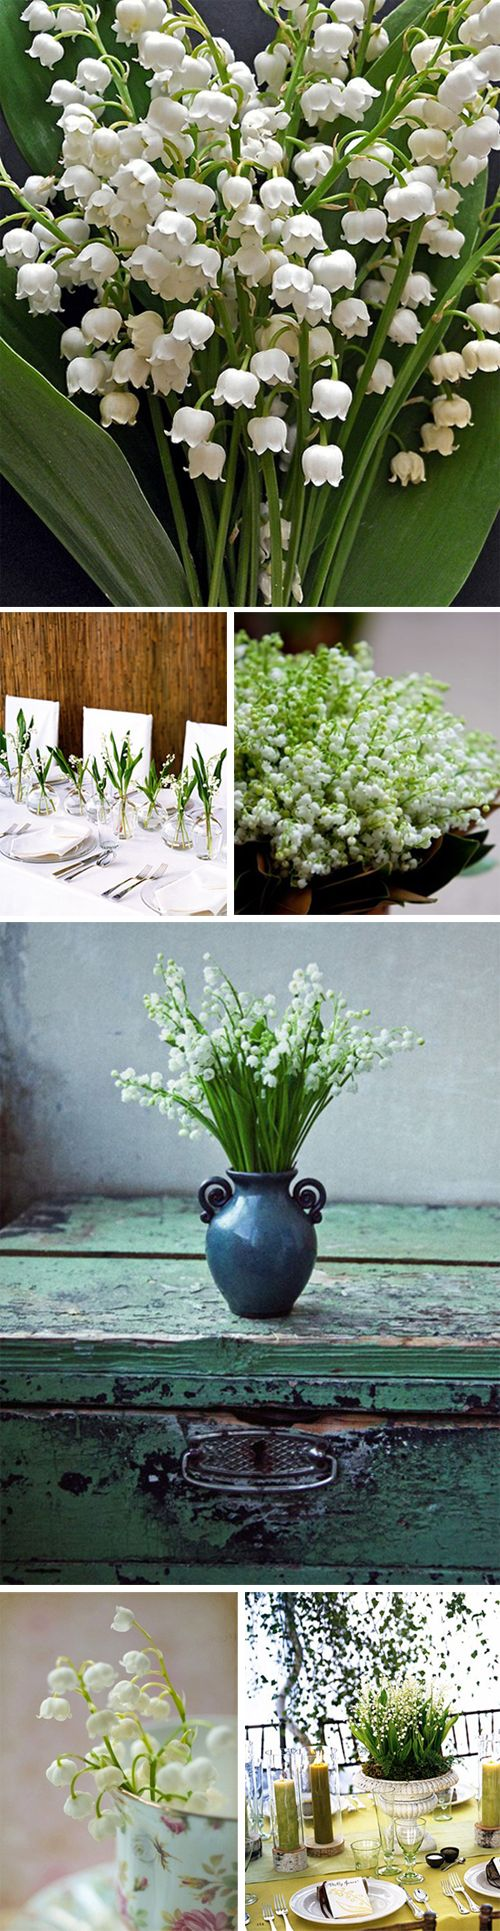 My Utmost Favorite! Lily of the valley flowers.